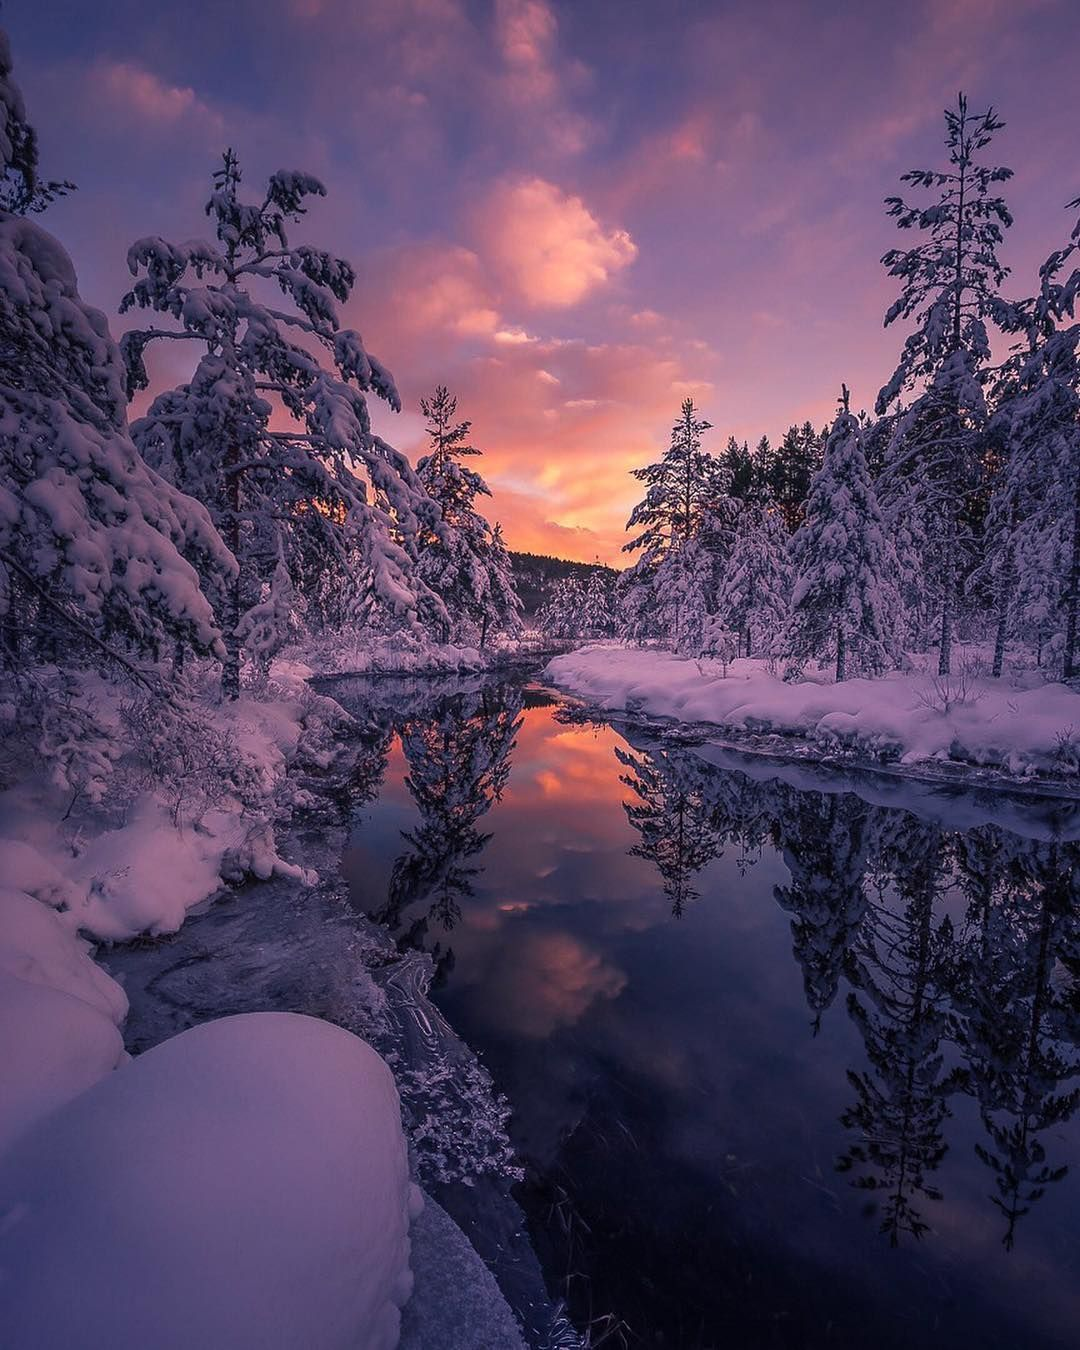 Best Pictures Gallery On Instagram Picture Of The Day Photosbyroger Congratulations Winter Sunset Sunset Photos Norway